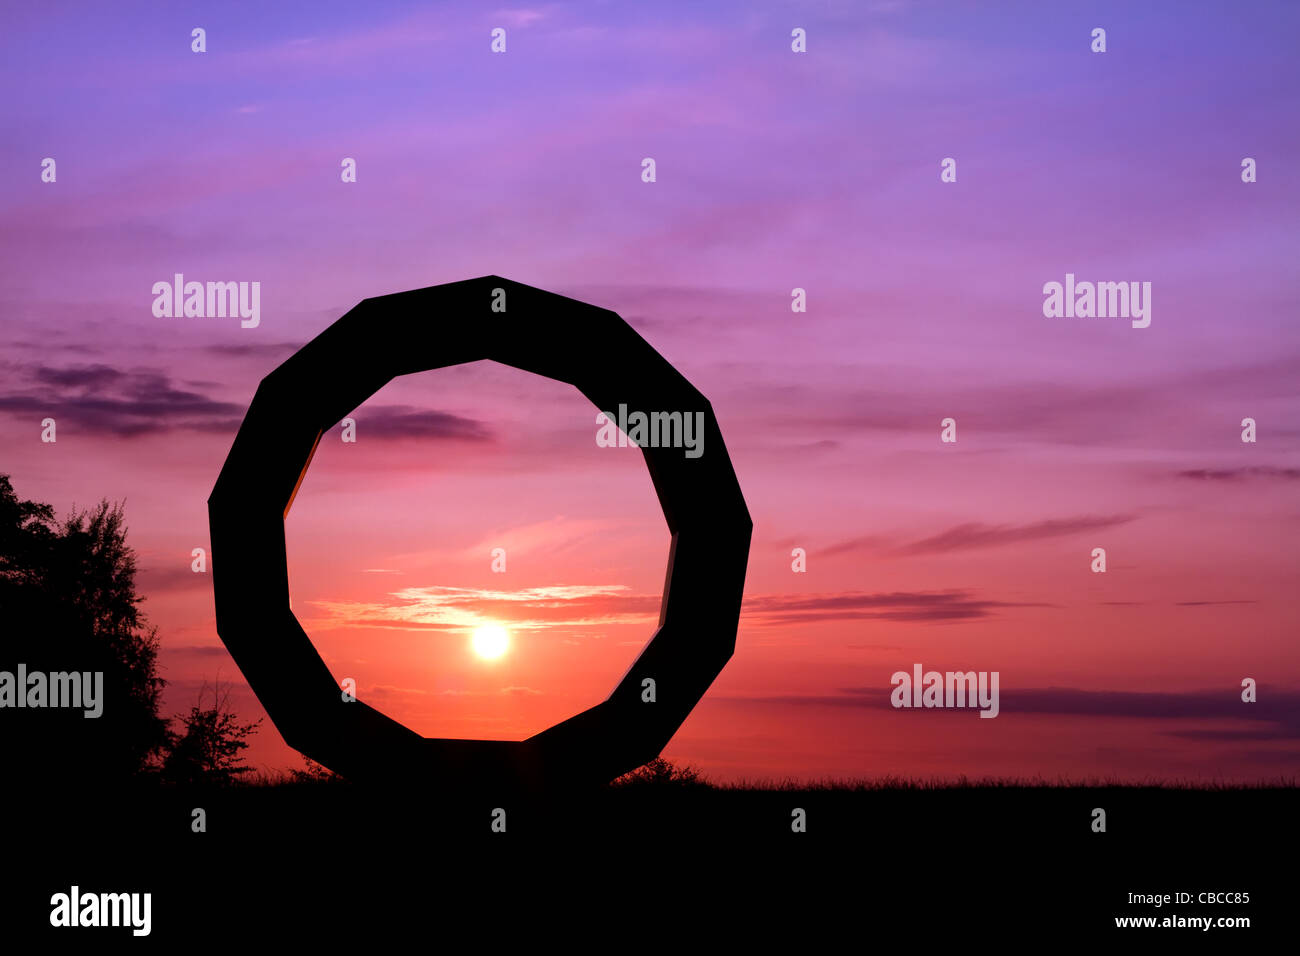 SUNSET SILHOUETTE image of granite sculpture known as Heavens Gate, part of the Longleat Estate, Wiltshire - Stock Image